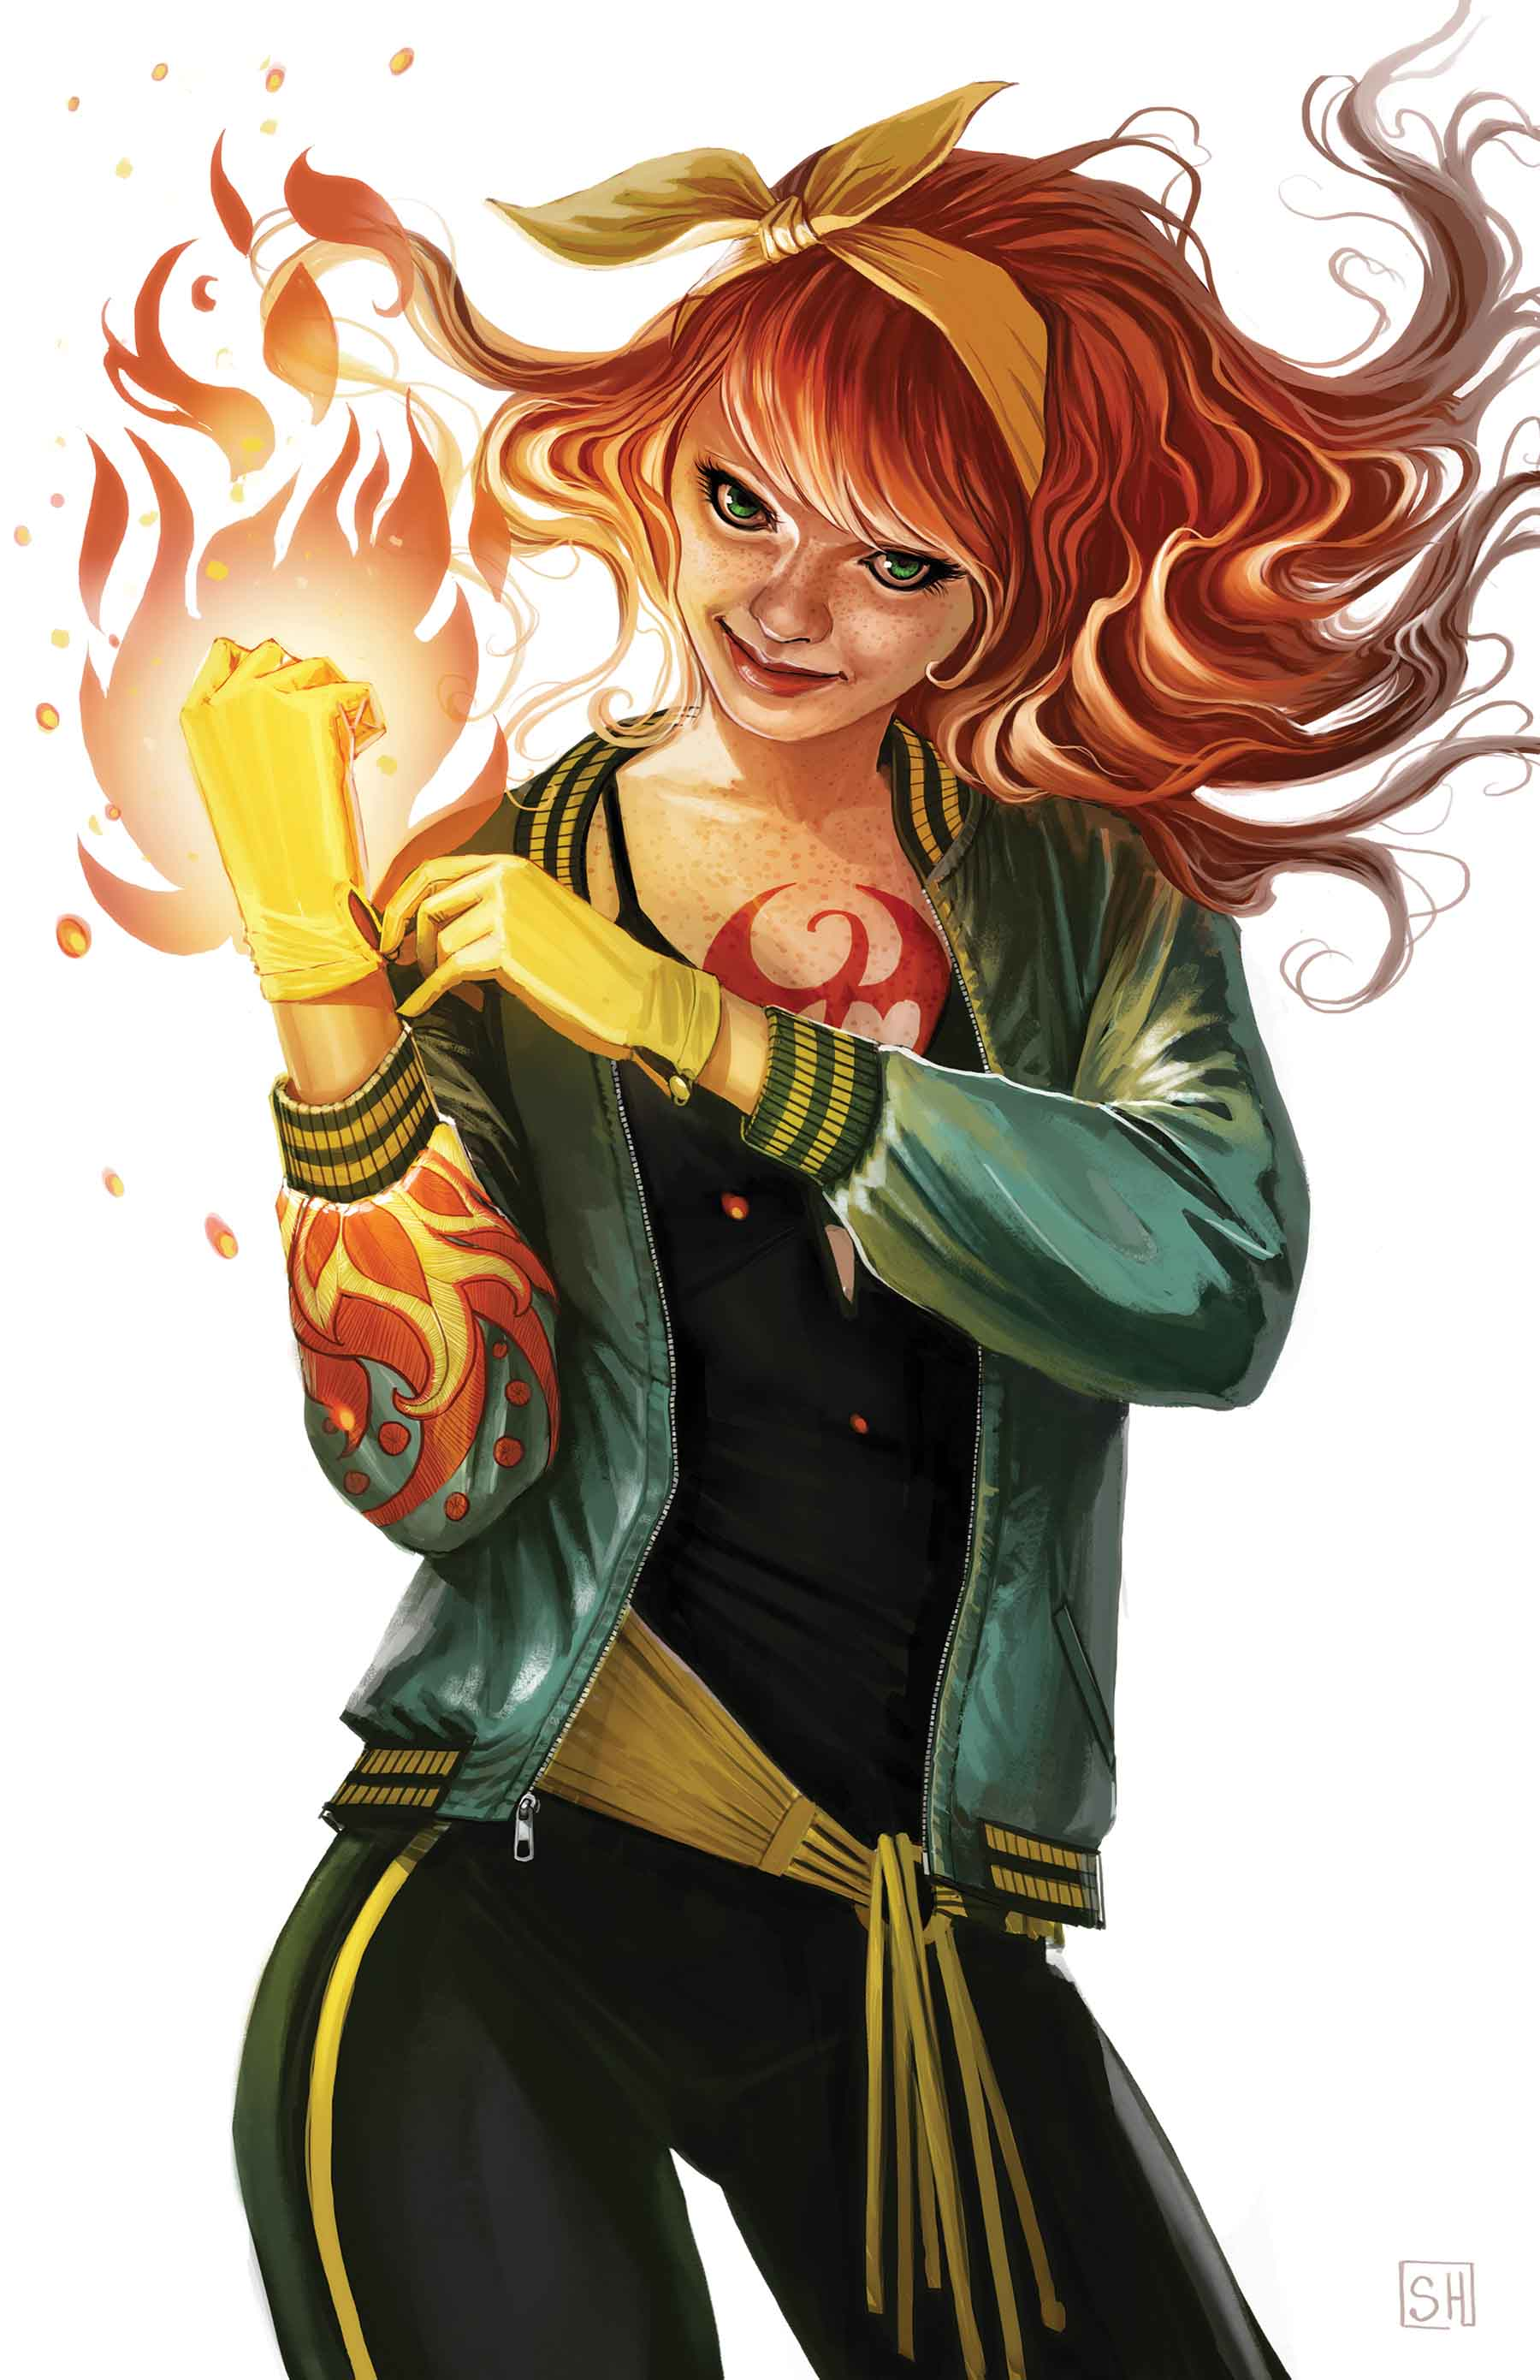 Face It Tiger, You Won't Want To Miss These Spectacular Mary Jane Watson Variant Covers